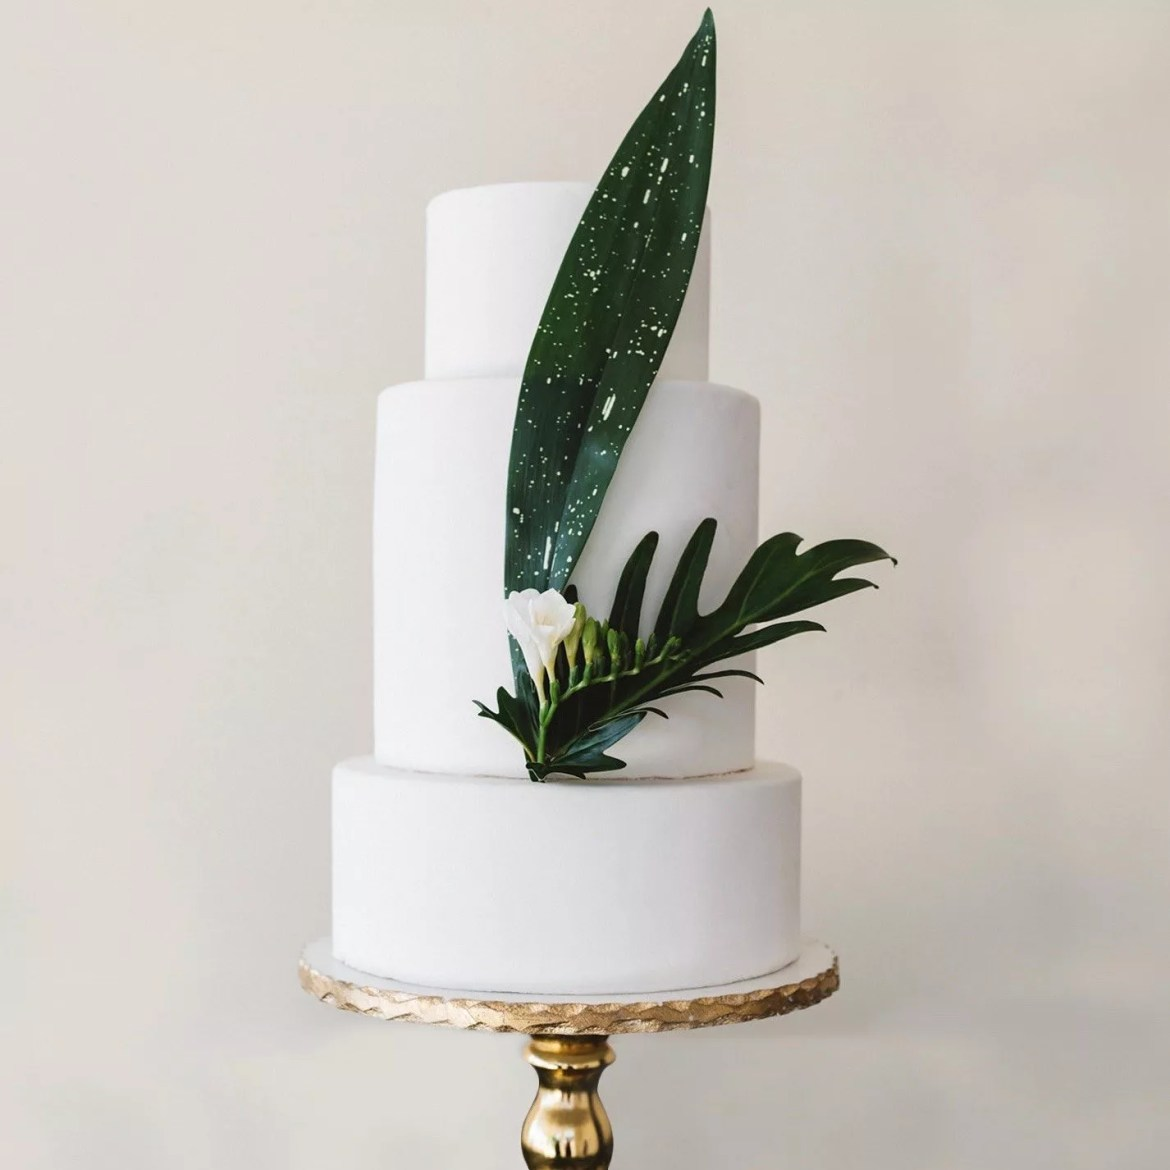 Cake with greenery